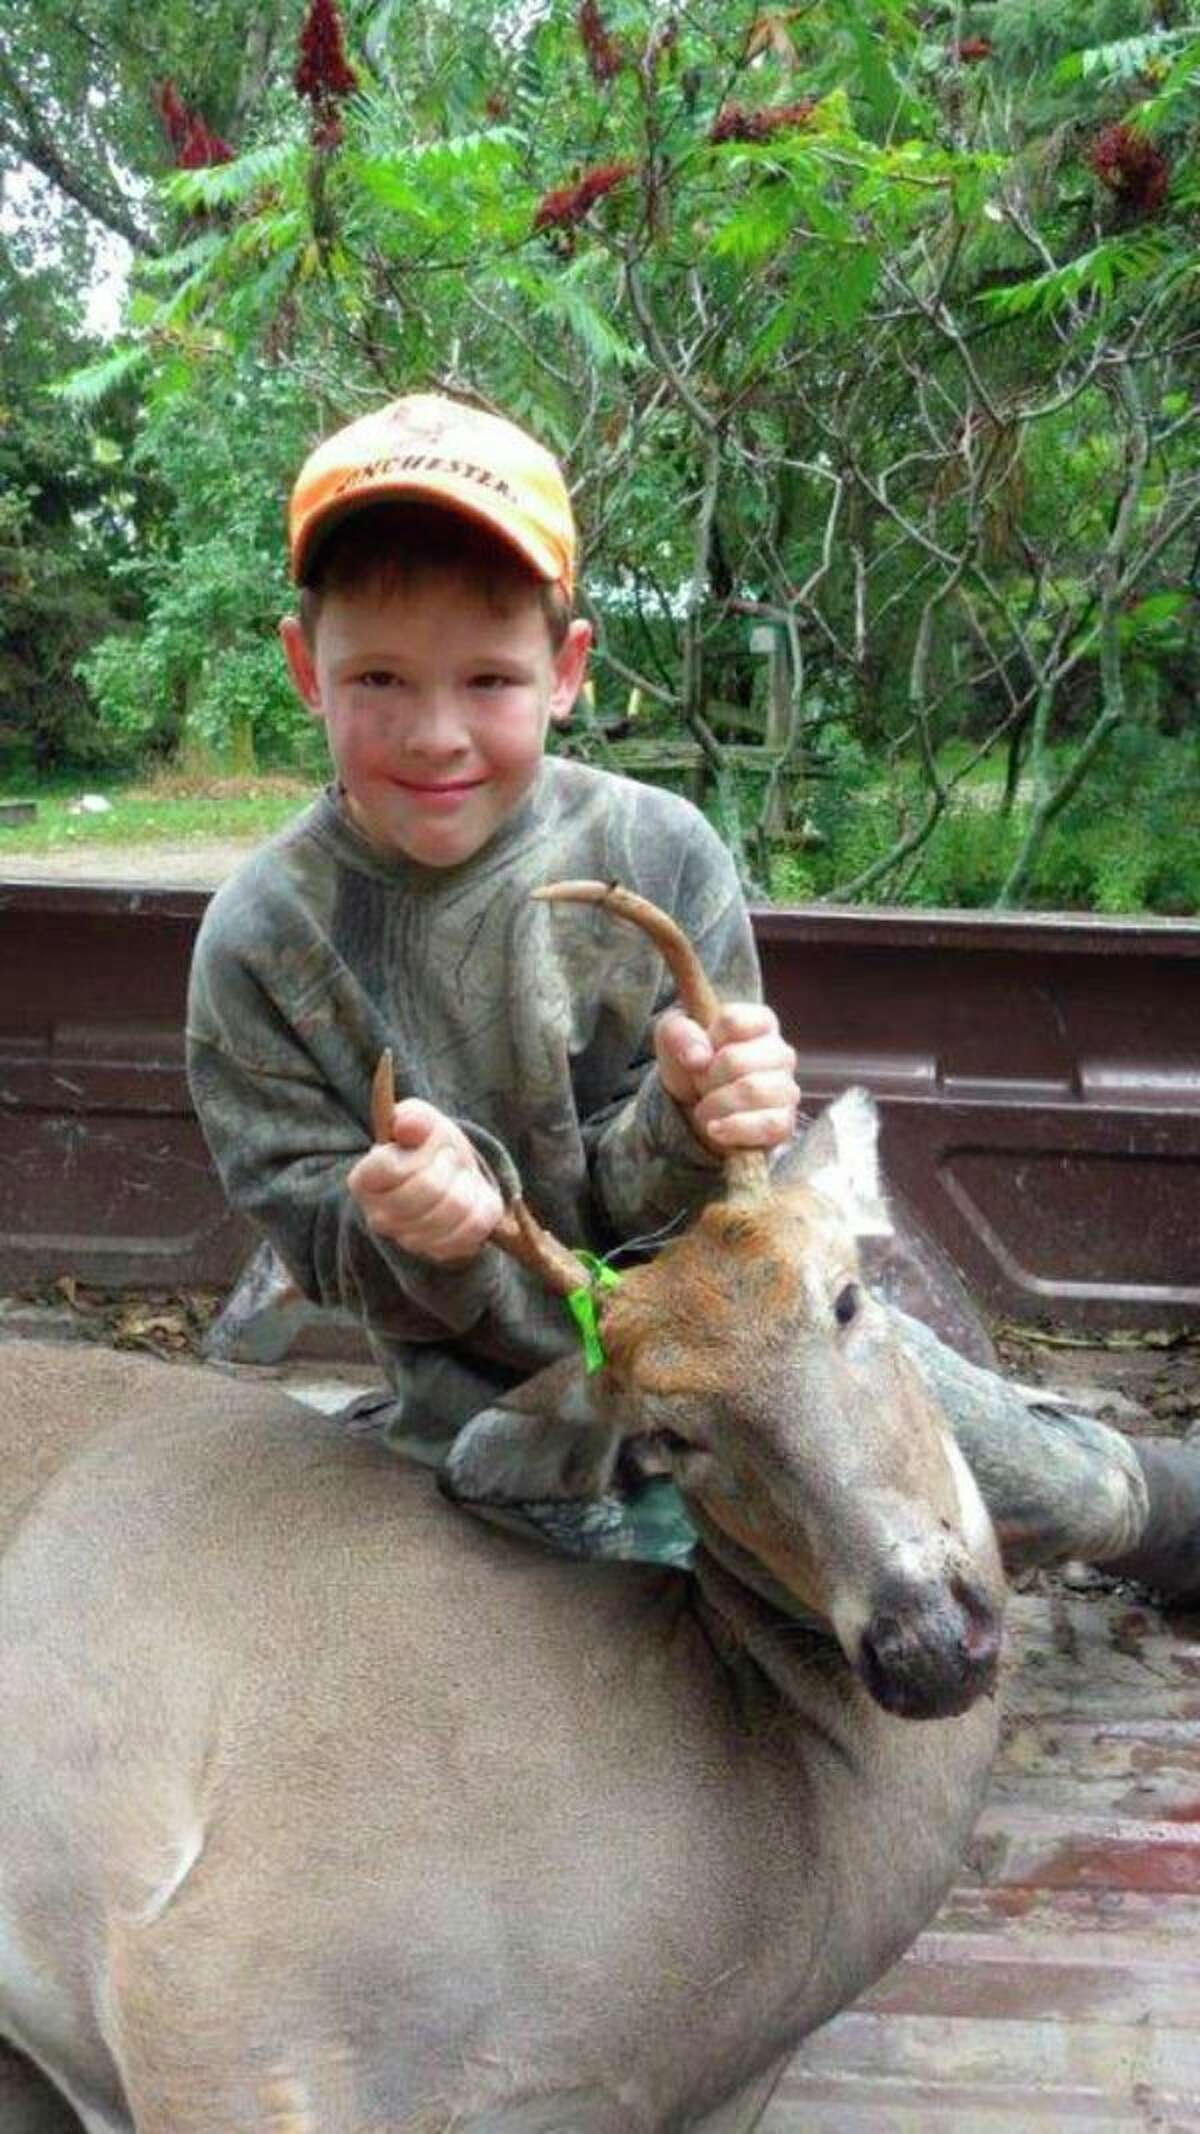 Hugh Walker of Cass City was only 10 years old when he bagged his firstbuck with a .50 caliber muzzleloader during the 2014 Youth Deer Season.His mentor was his Grandpa Bob Walker ofKingston. Hugh remains an avid deer hunter to this day. (Tom Lounsbury/Hearst Michigan)